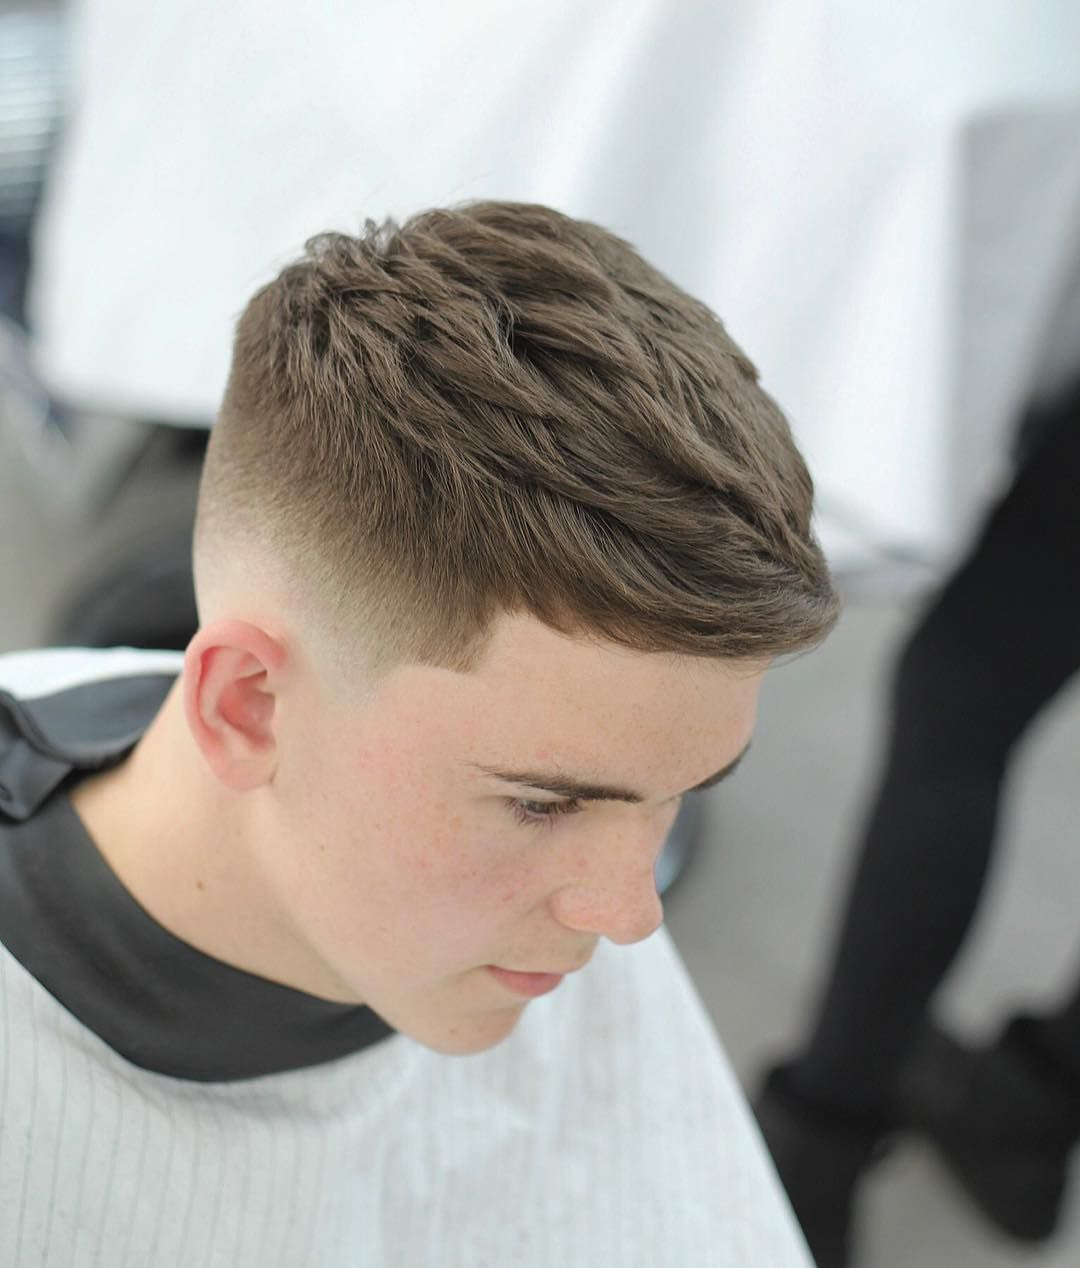 Men S Hairstyles 2020 Thick Hair Styles Best Fade Haircuts Trendy Short Hair Styles